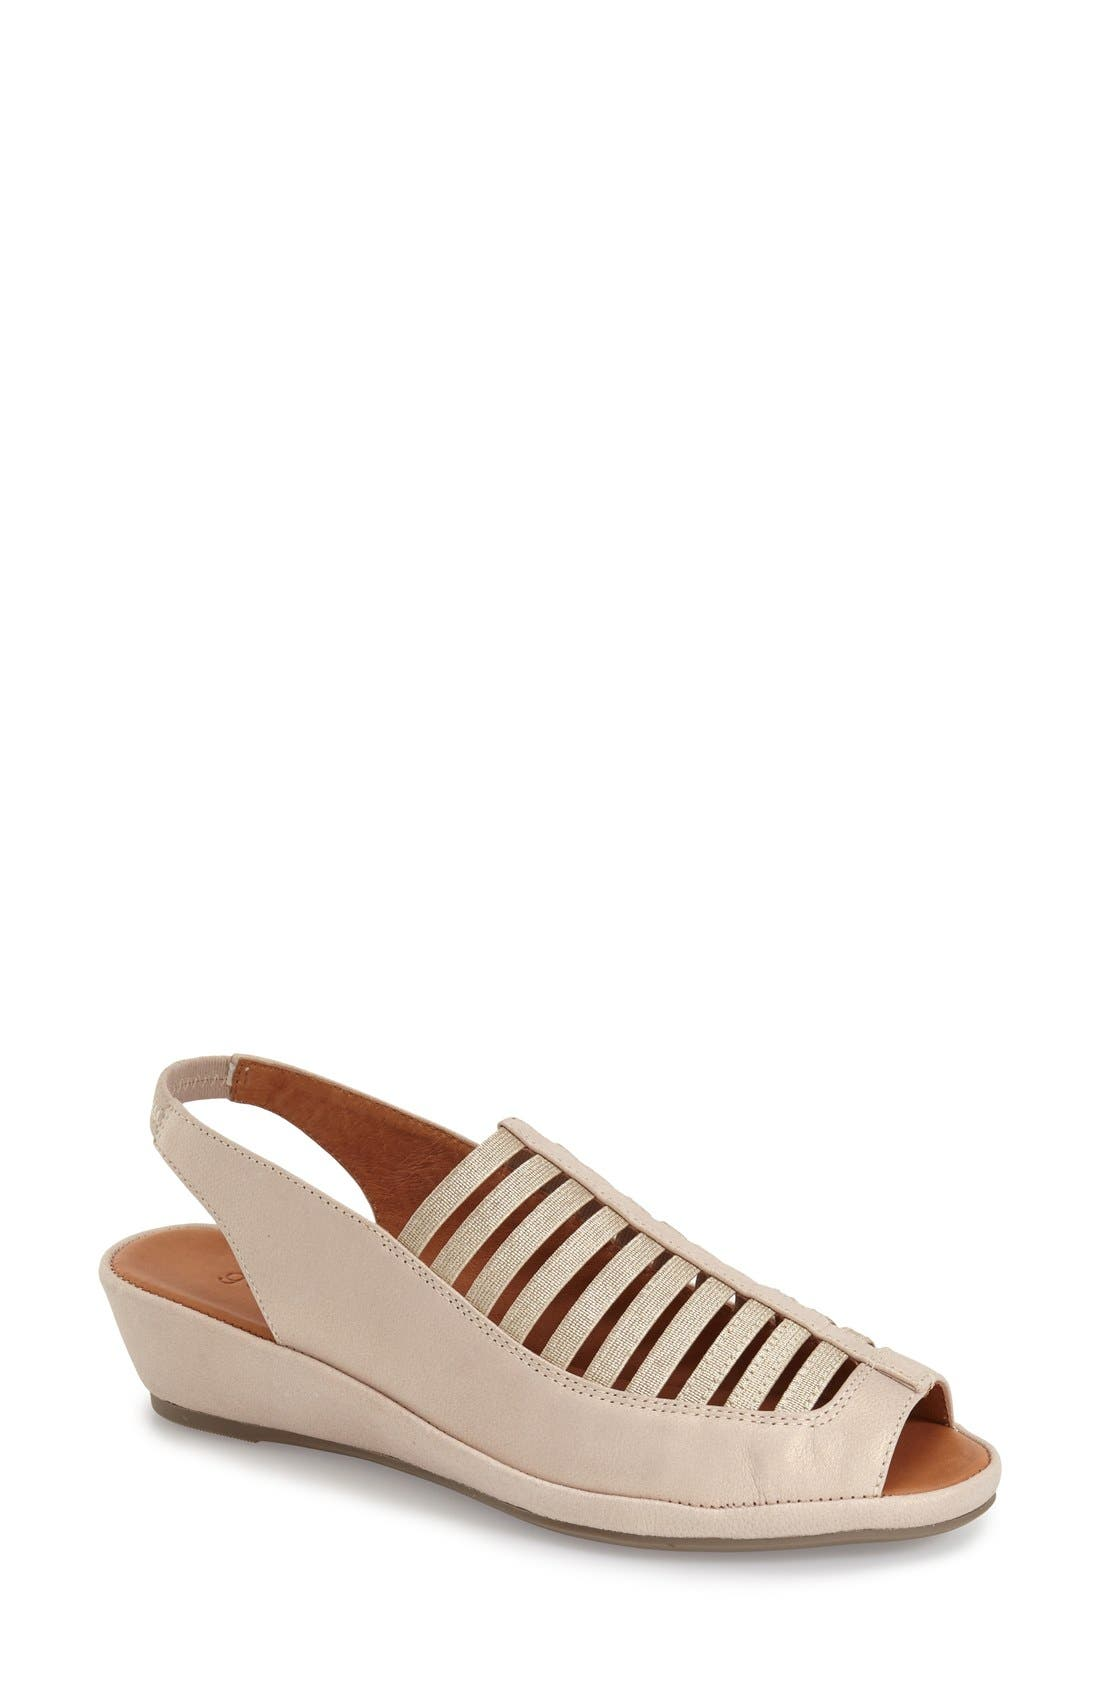 by Kenneth Cole 'Lee' Sandal,                             Main thumbnail 5, color,